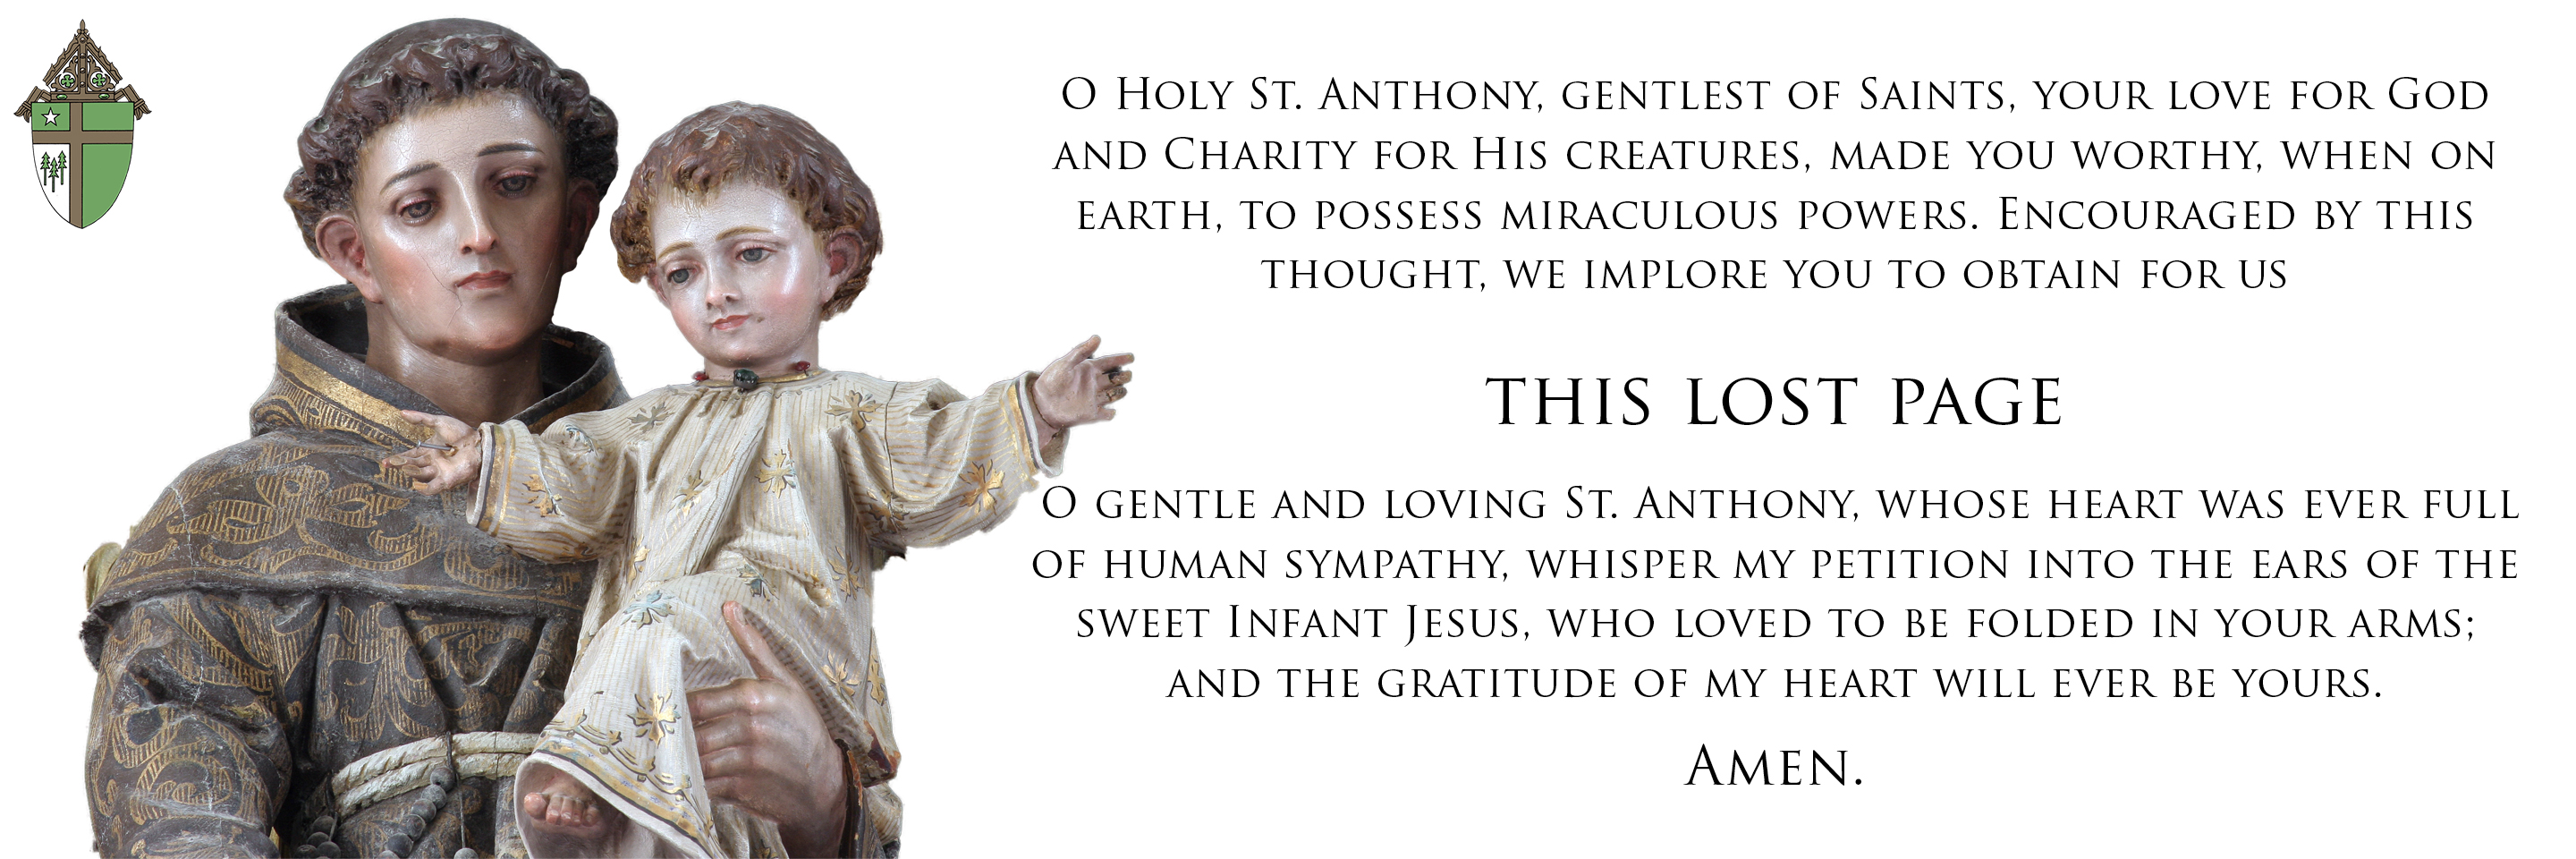 st. anthony.404.01